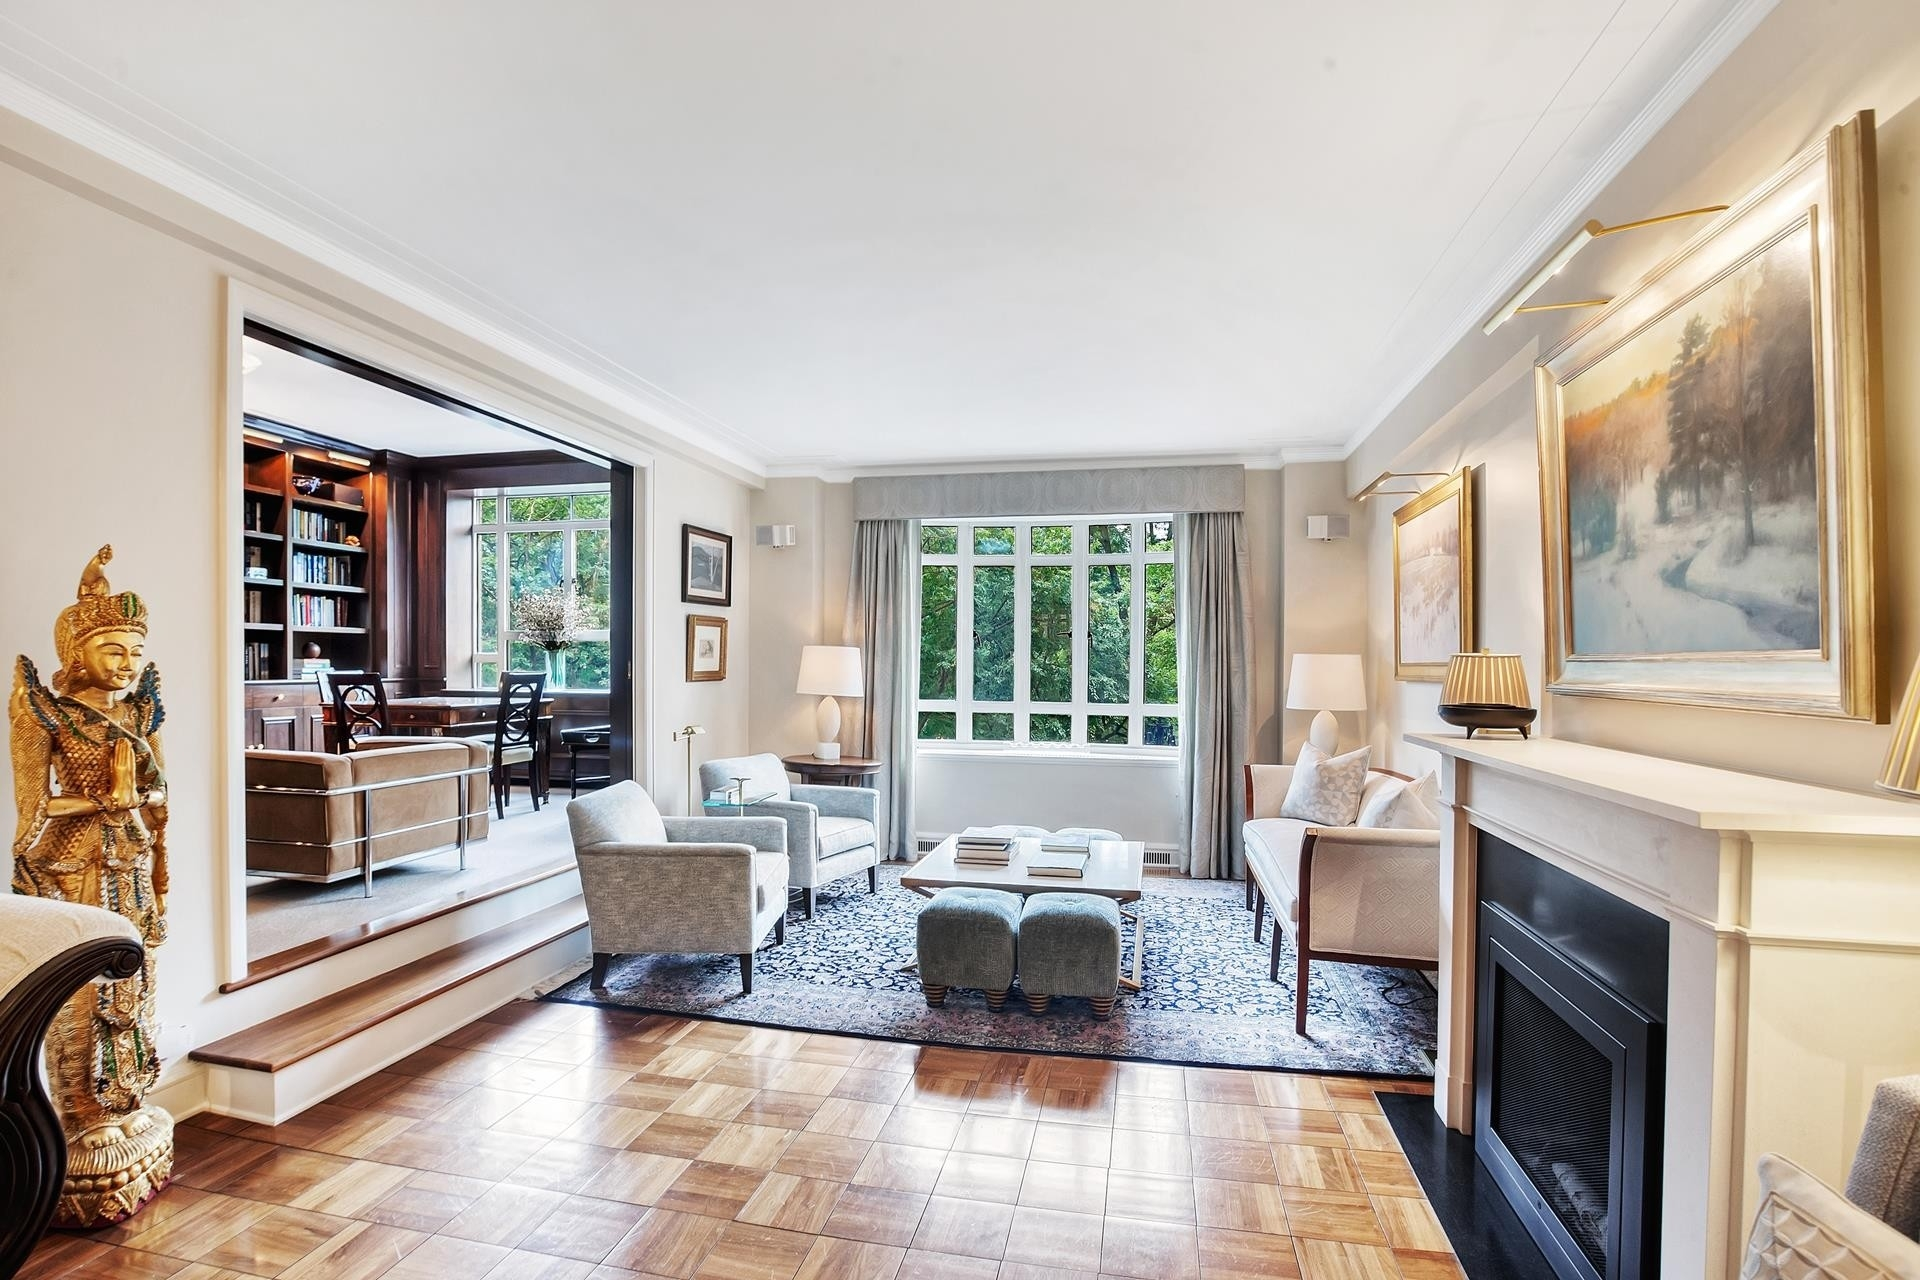 Condominium for Sale at Century, 25 CENTRAL PARK W, 4MN Lincoln Square, New York, NY 10023